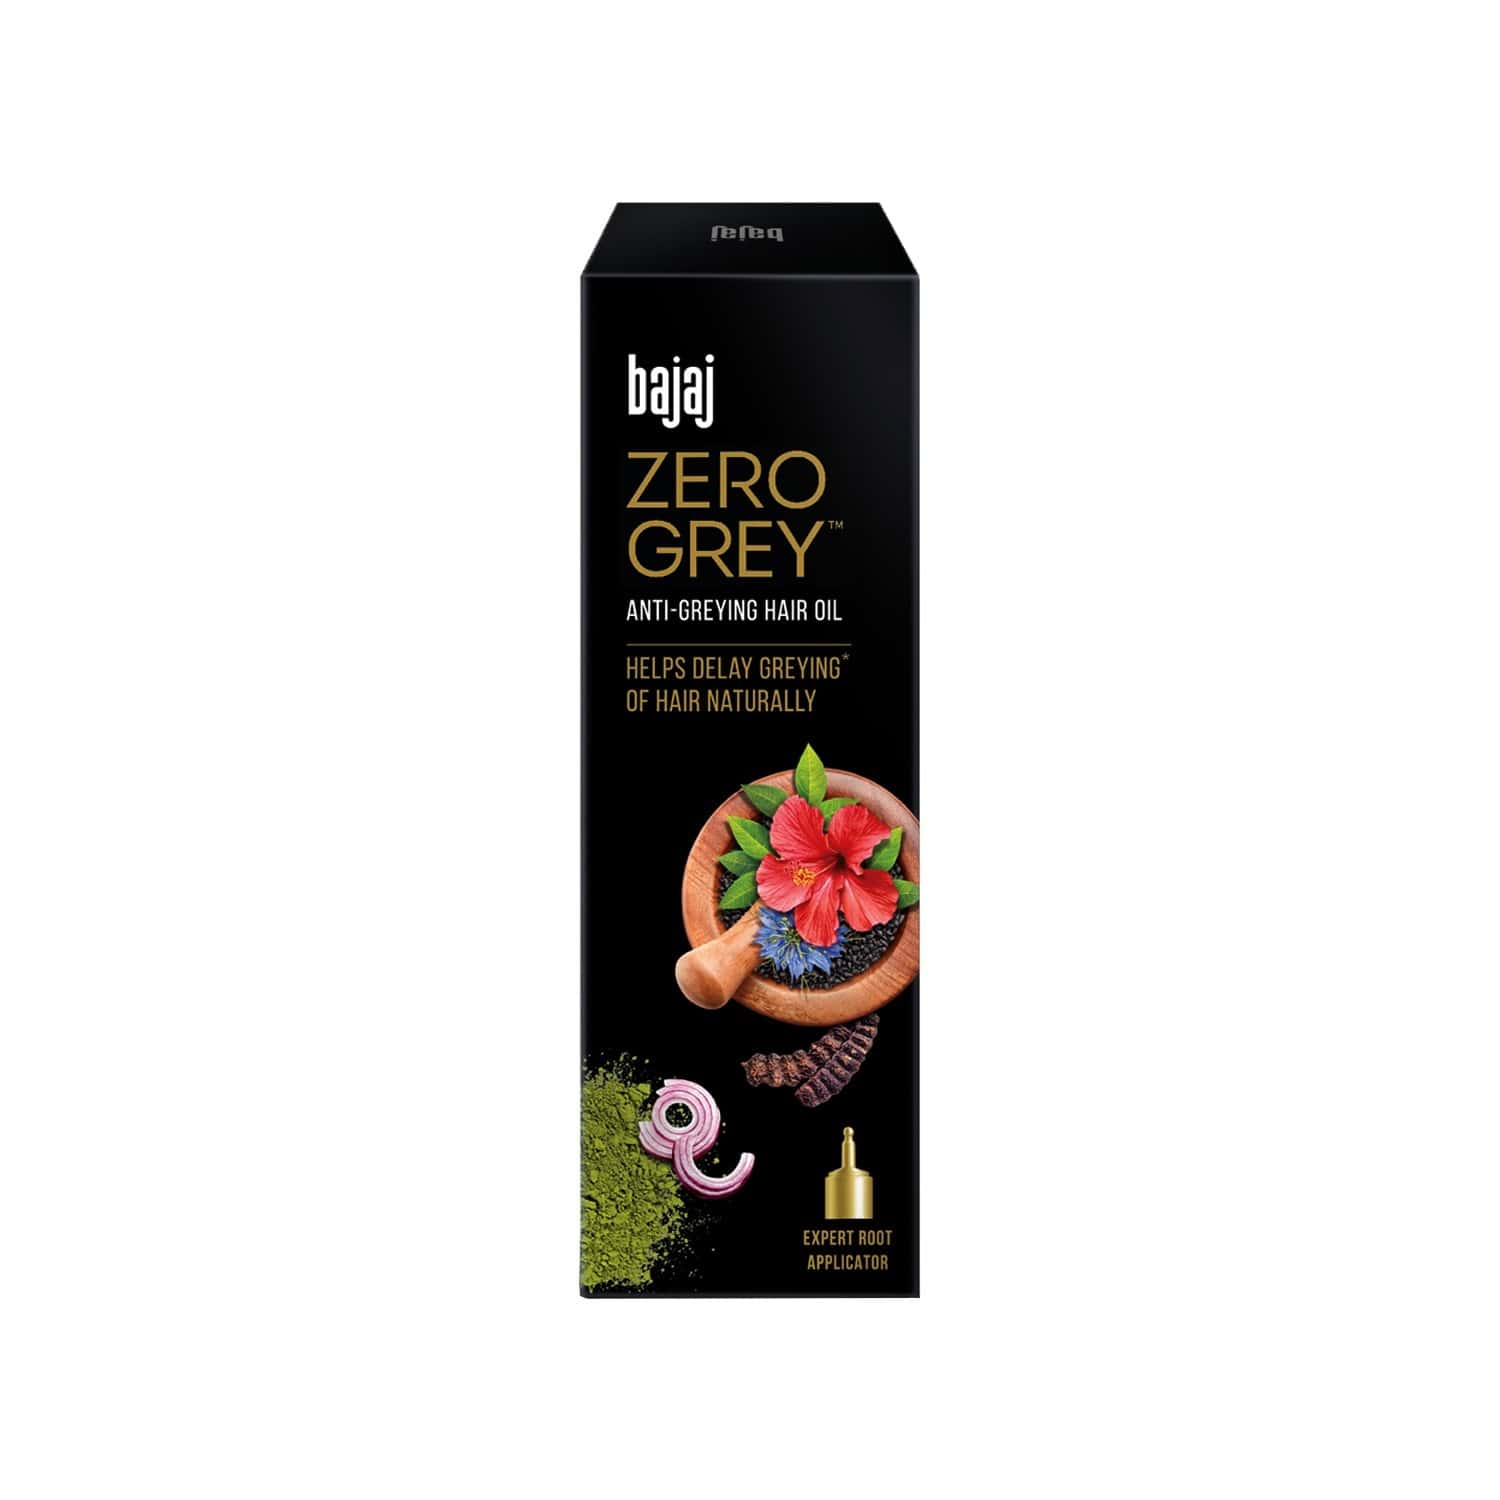 Bajaj Zero Grey Hair Oil Enriched With Onion, Helps Fight Greying Of Hair Naturally, 200ml